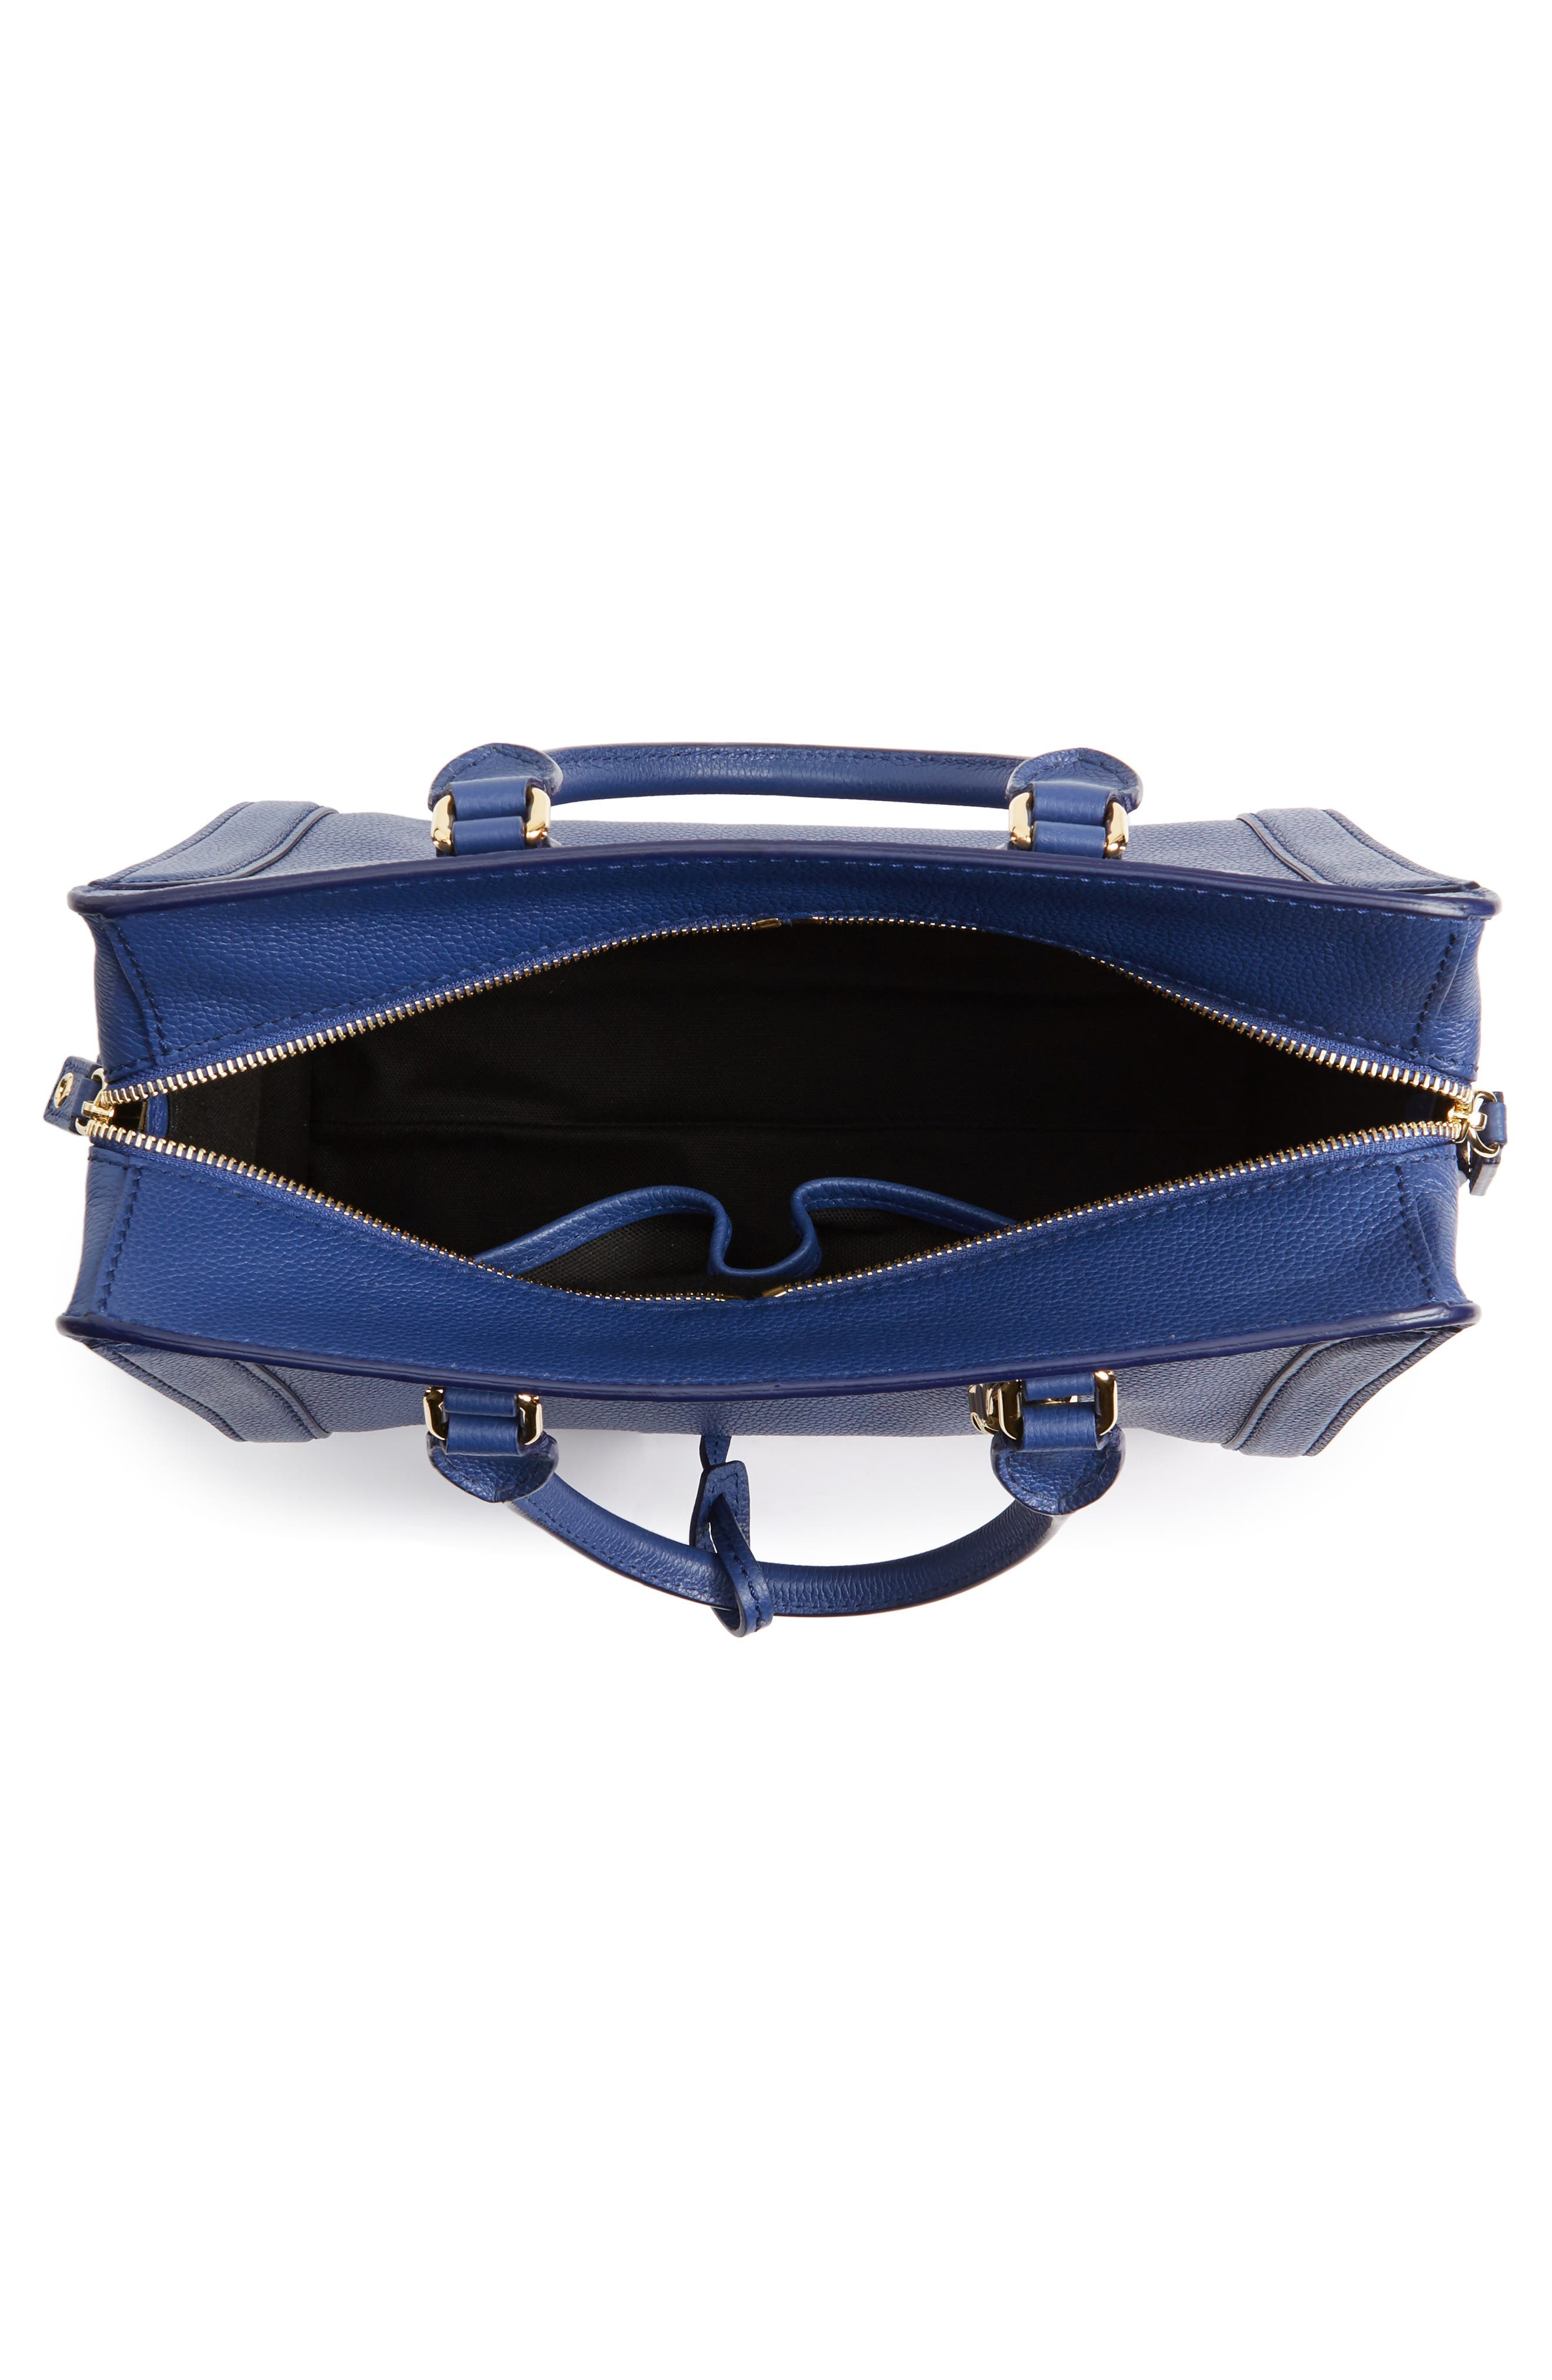 Alternate Image 4  - Alexander McQueen 'Small Padlock' Calfskin Leather Duffel Bag